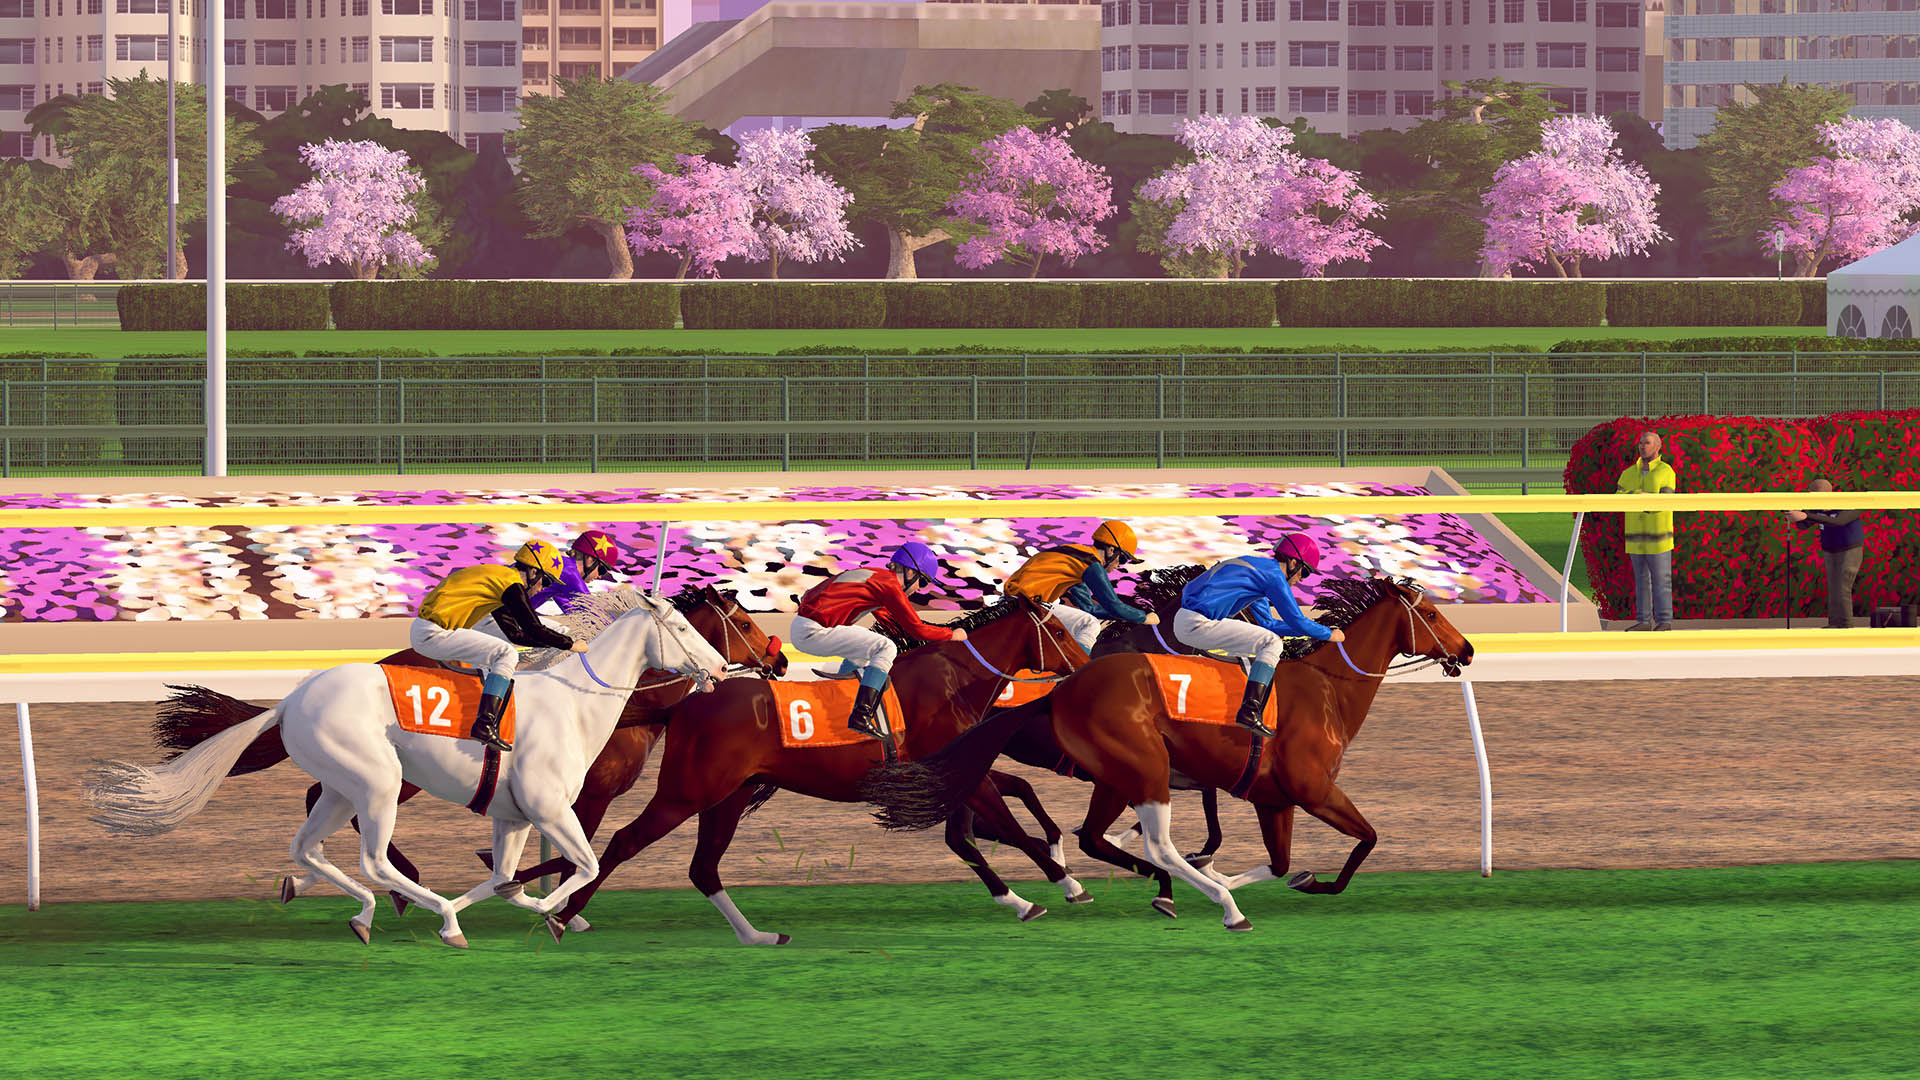 Rival Stars Horse Racing PikPok